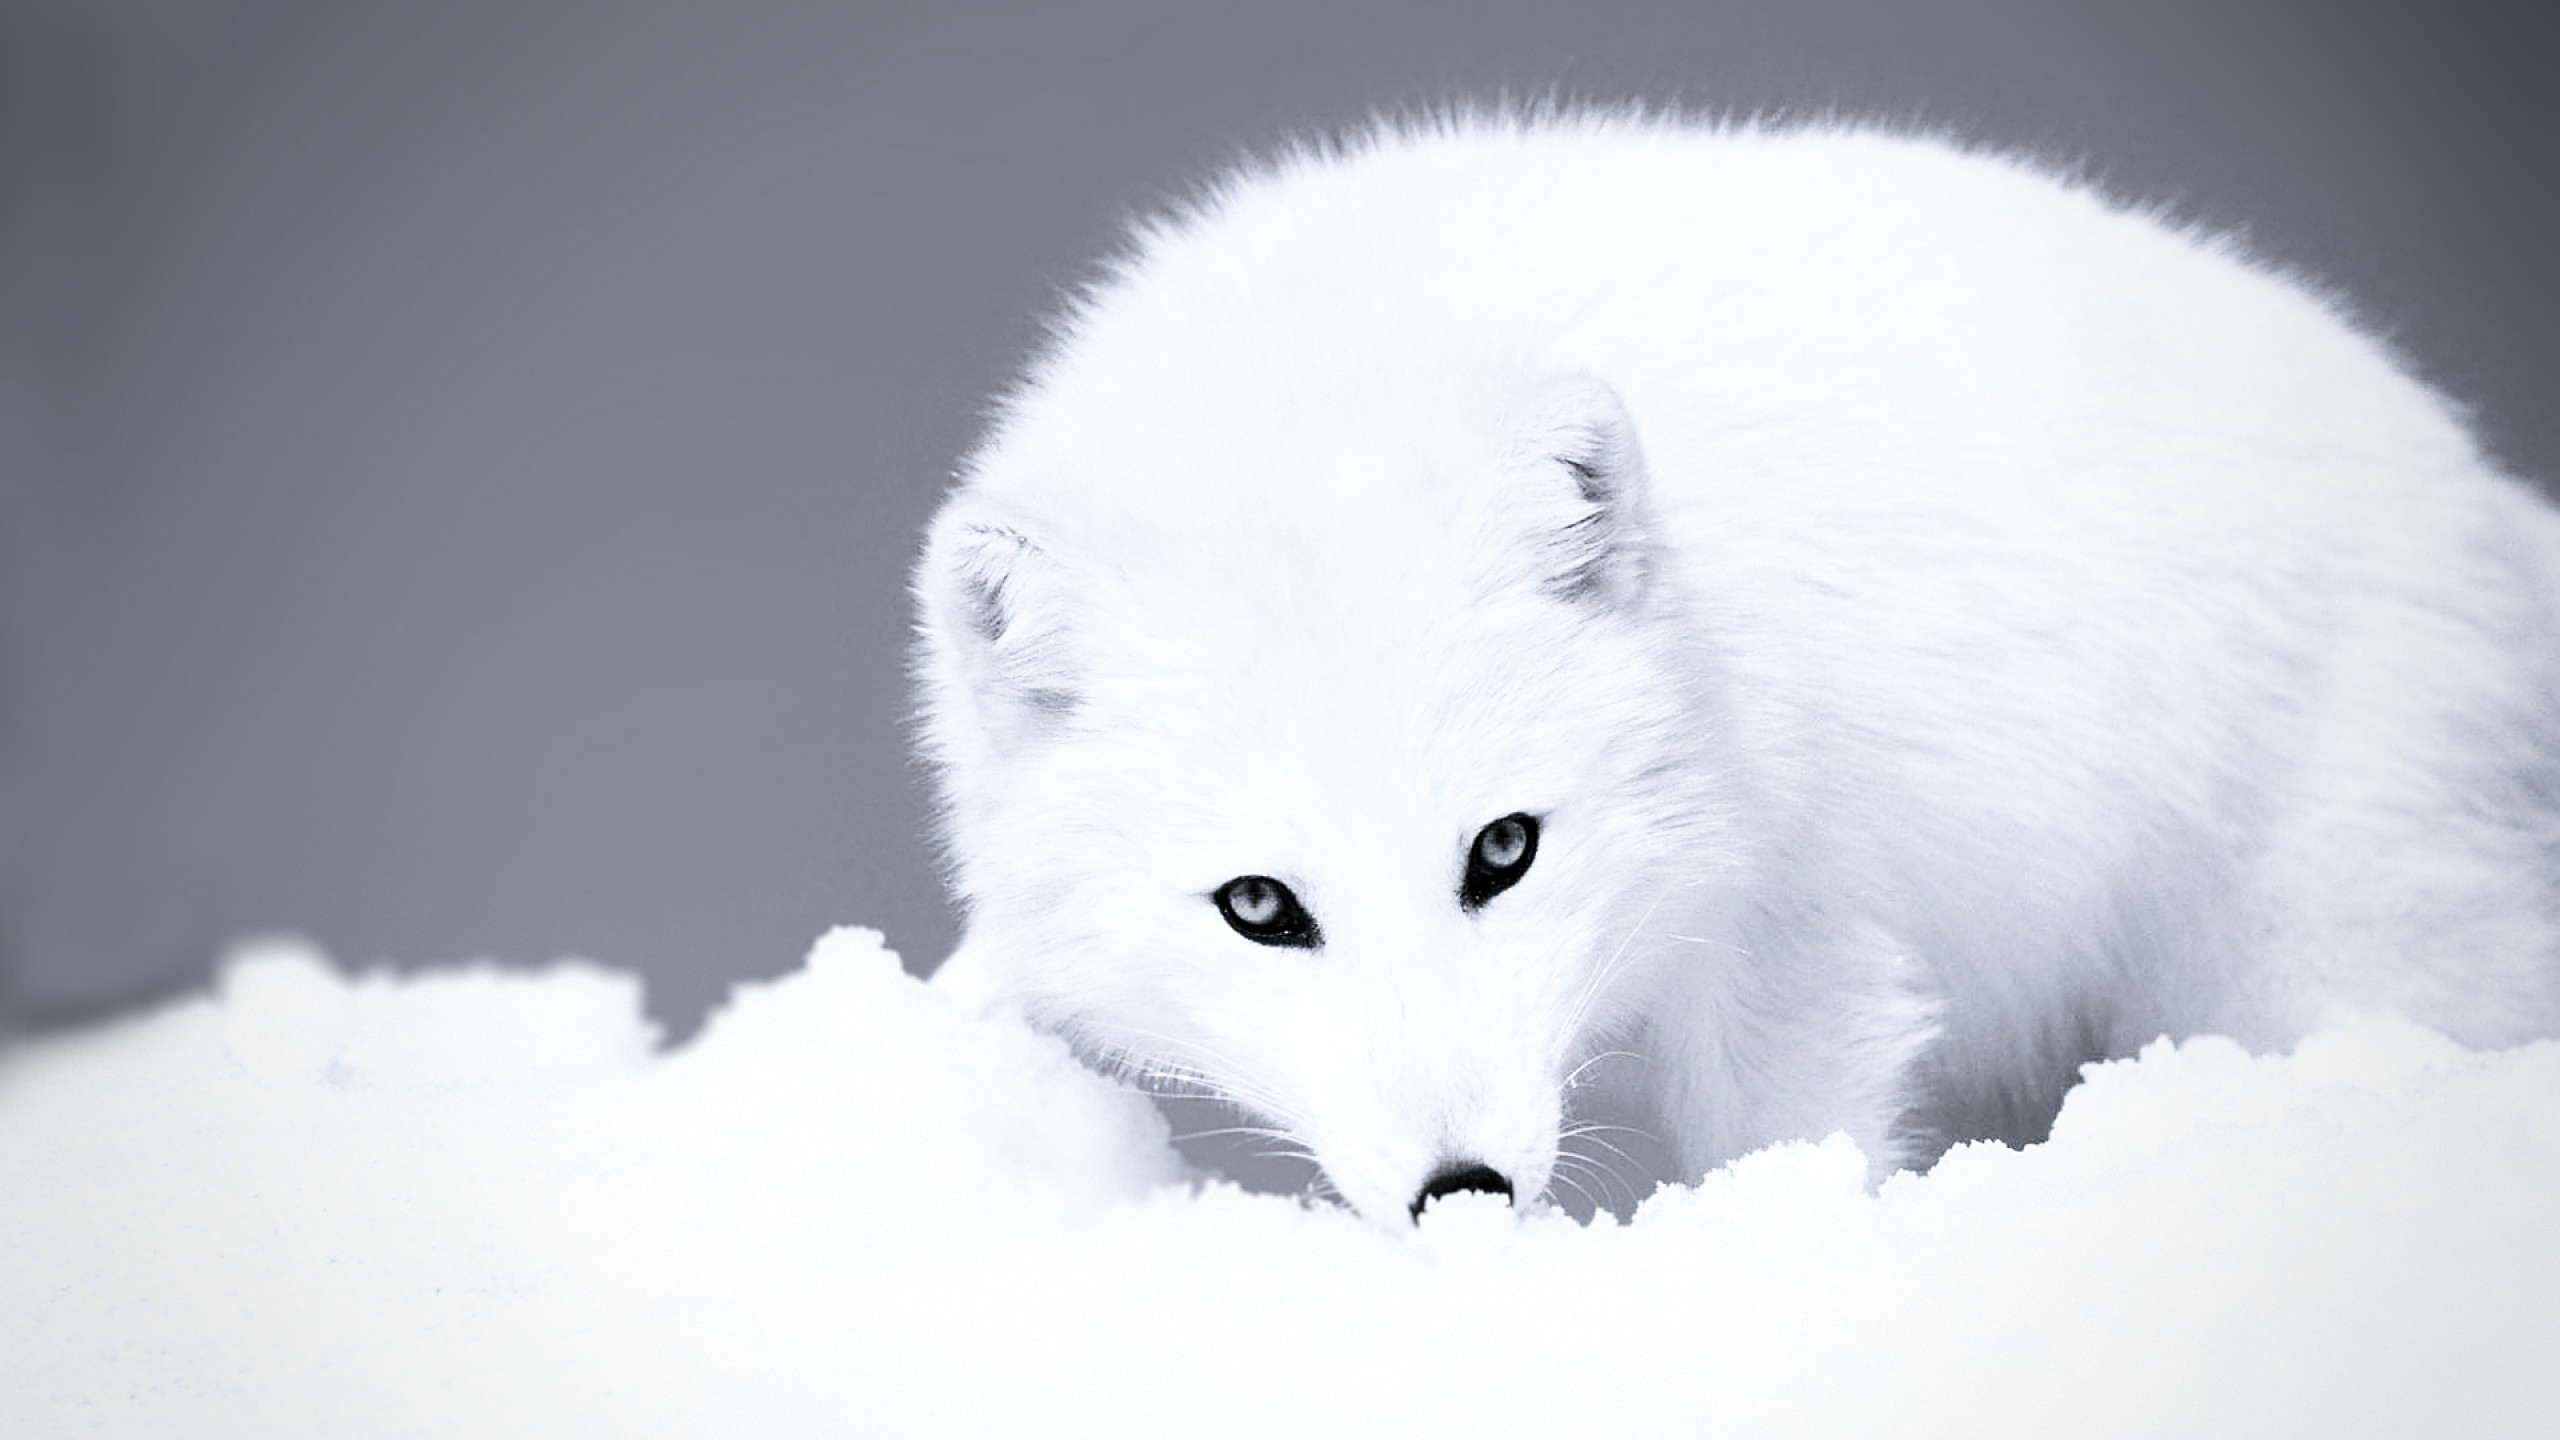 grayscale-arctic-fox-desktop-wallpaper-2560x1440